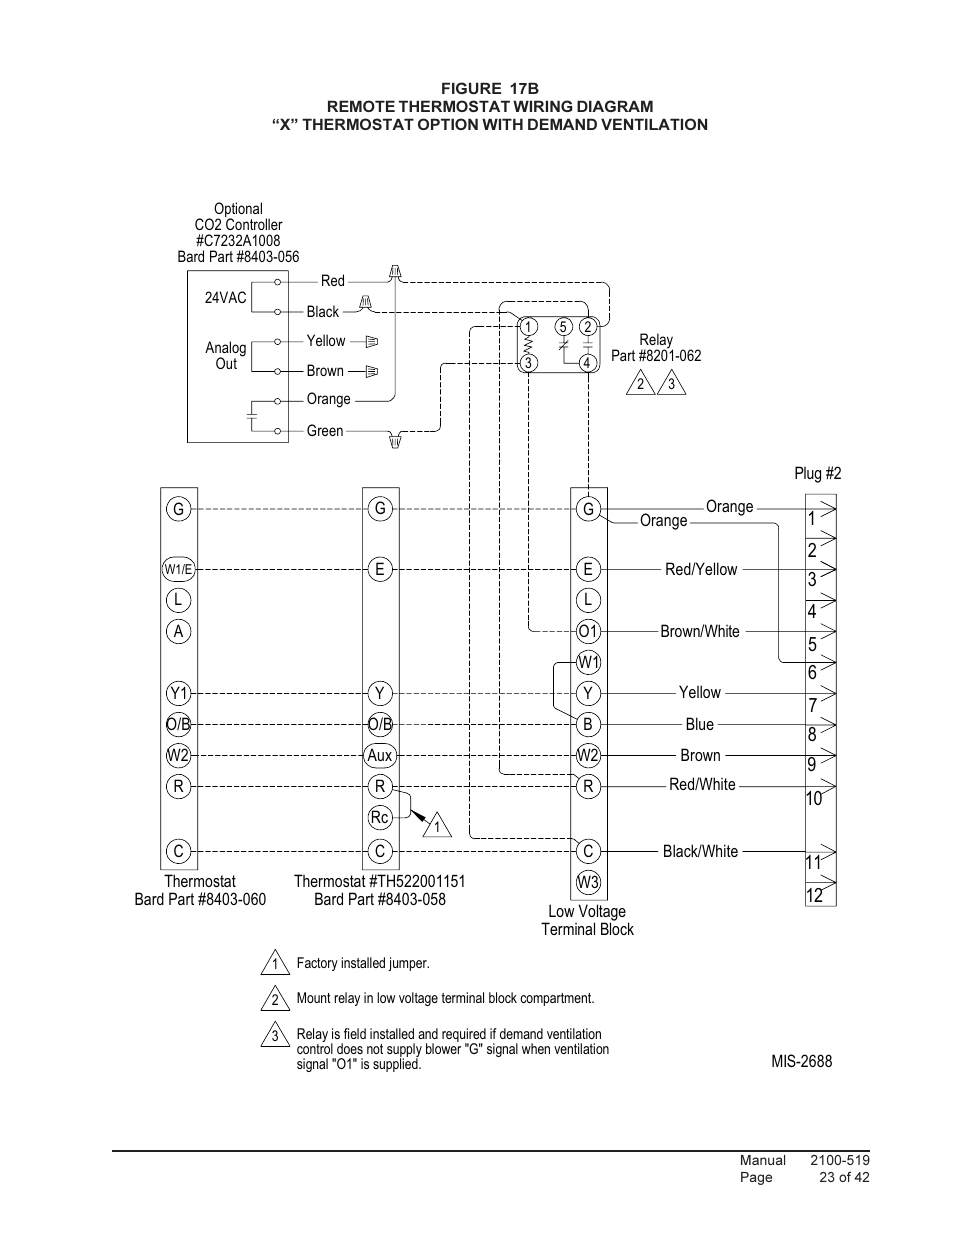 Bard Qtec Series Packaged Heat Pump Q30h1 User Manual Page 23 42 Wiring Diagrams Also For Q42h1